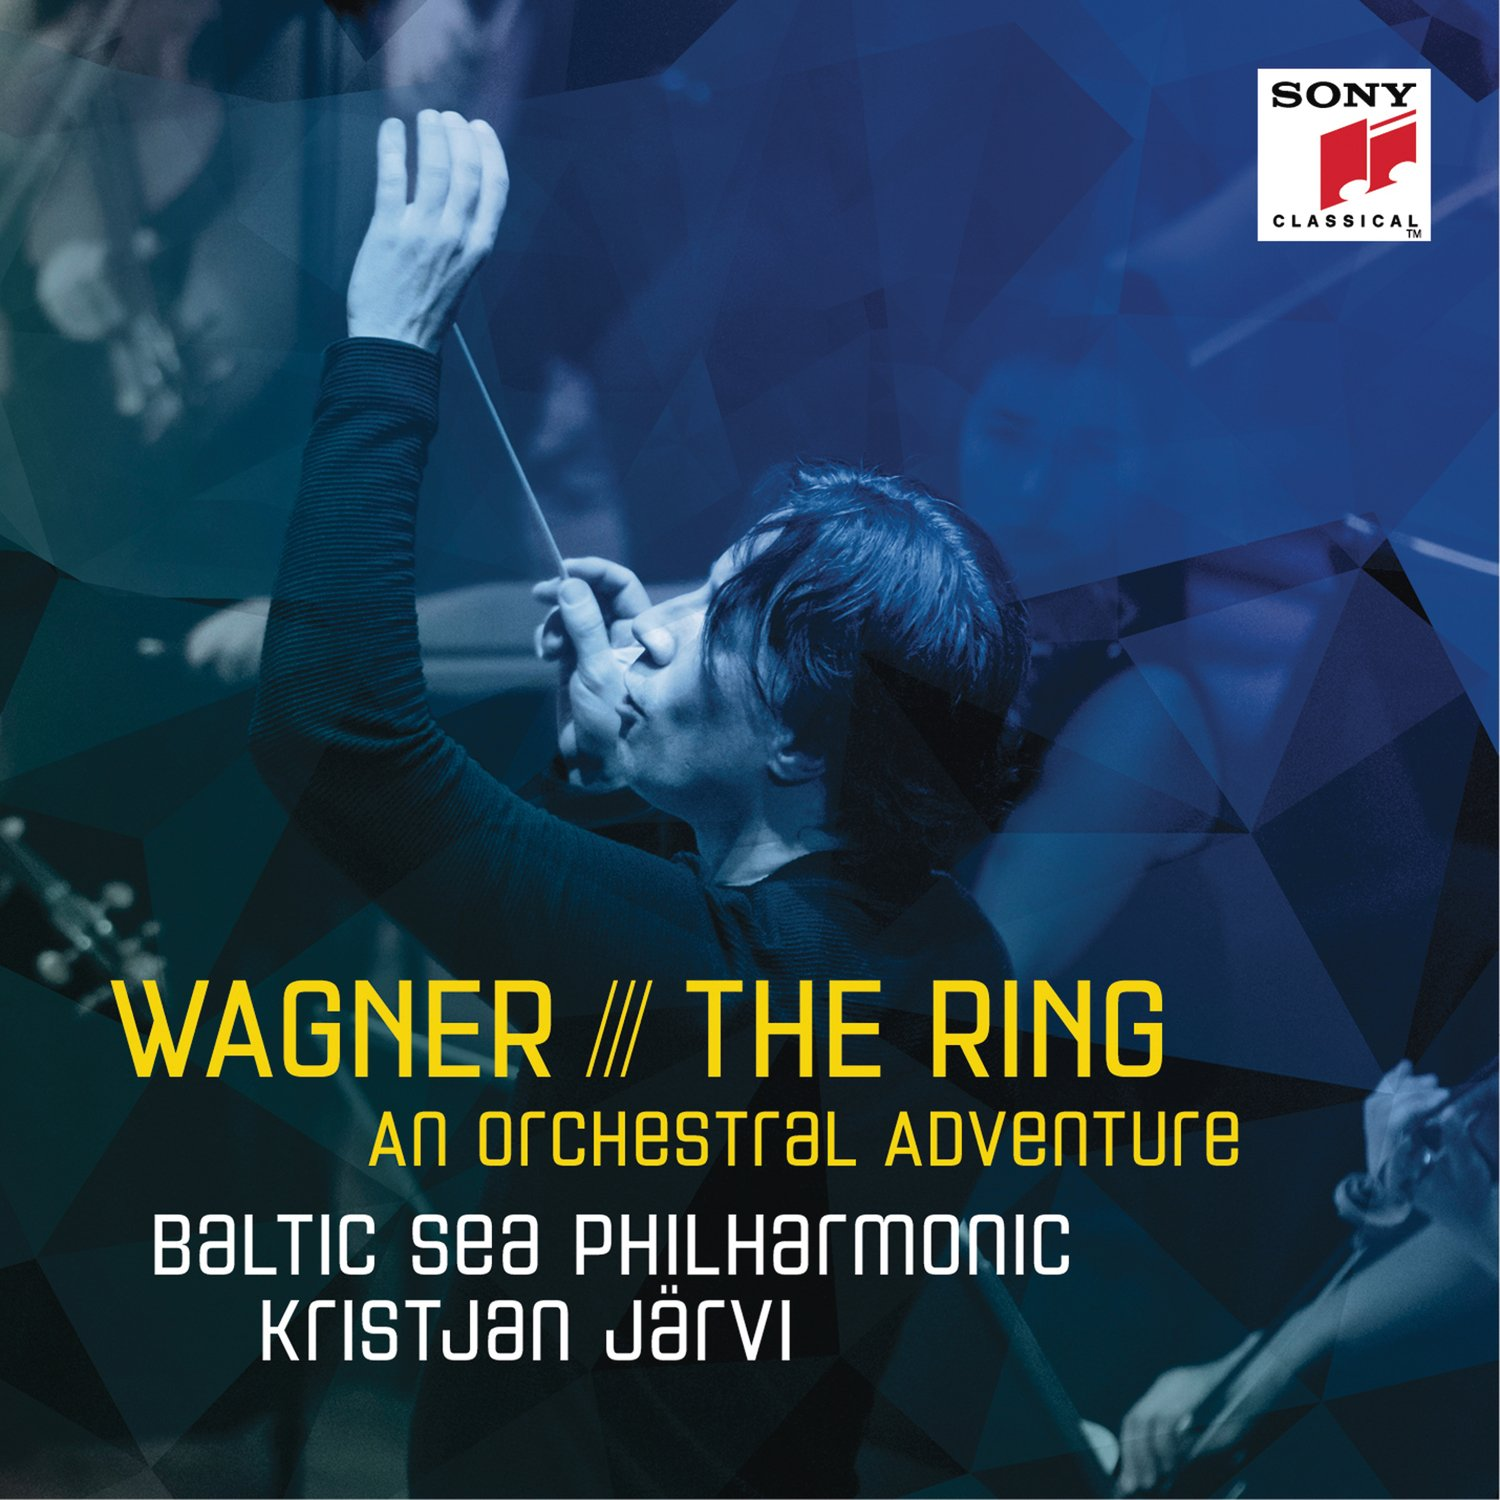 Wagner: The Ring - An Orchestral Adventure by Bmg